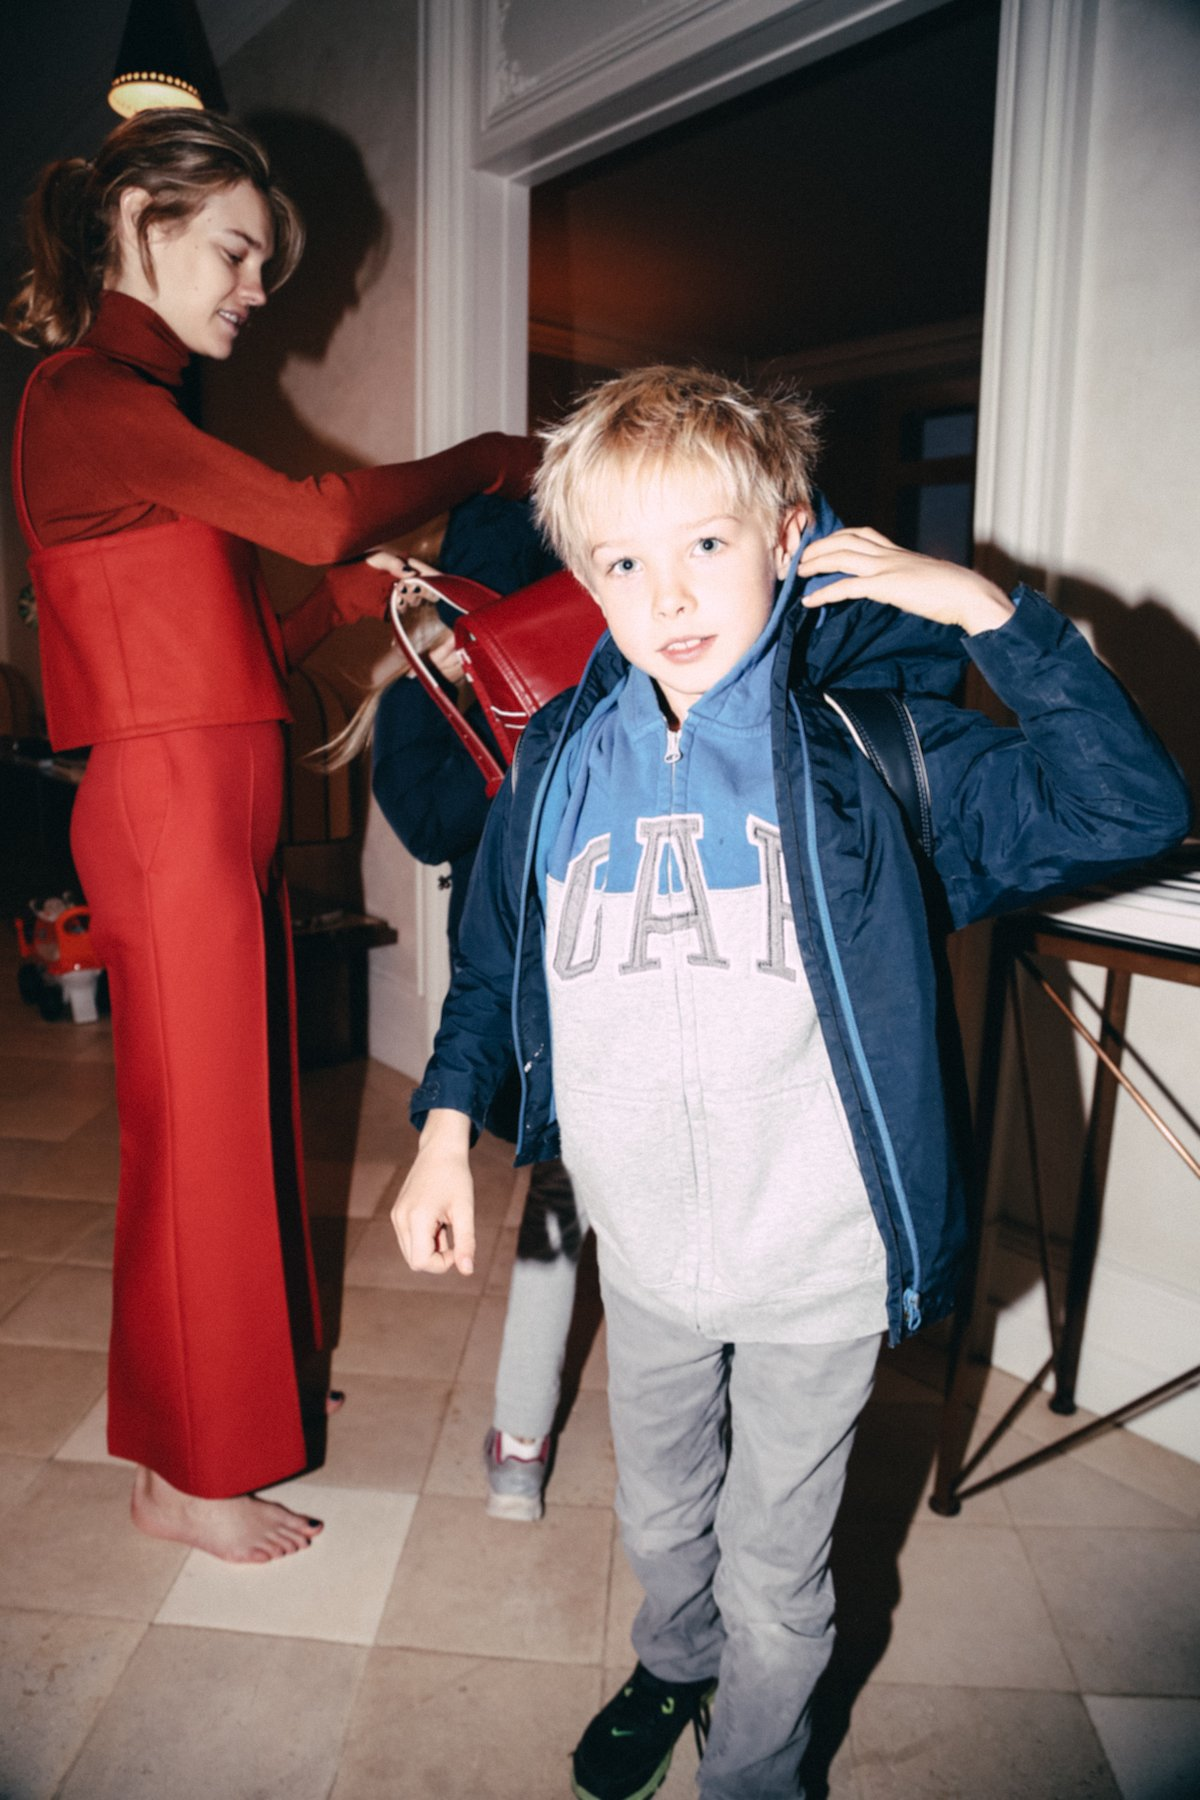 her-8-year-old-son-viktor-inherited-his-name-from-his-grand-grandfather-viktor-gromov-along-with-his-cheerful-sparkly-personality